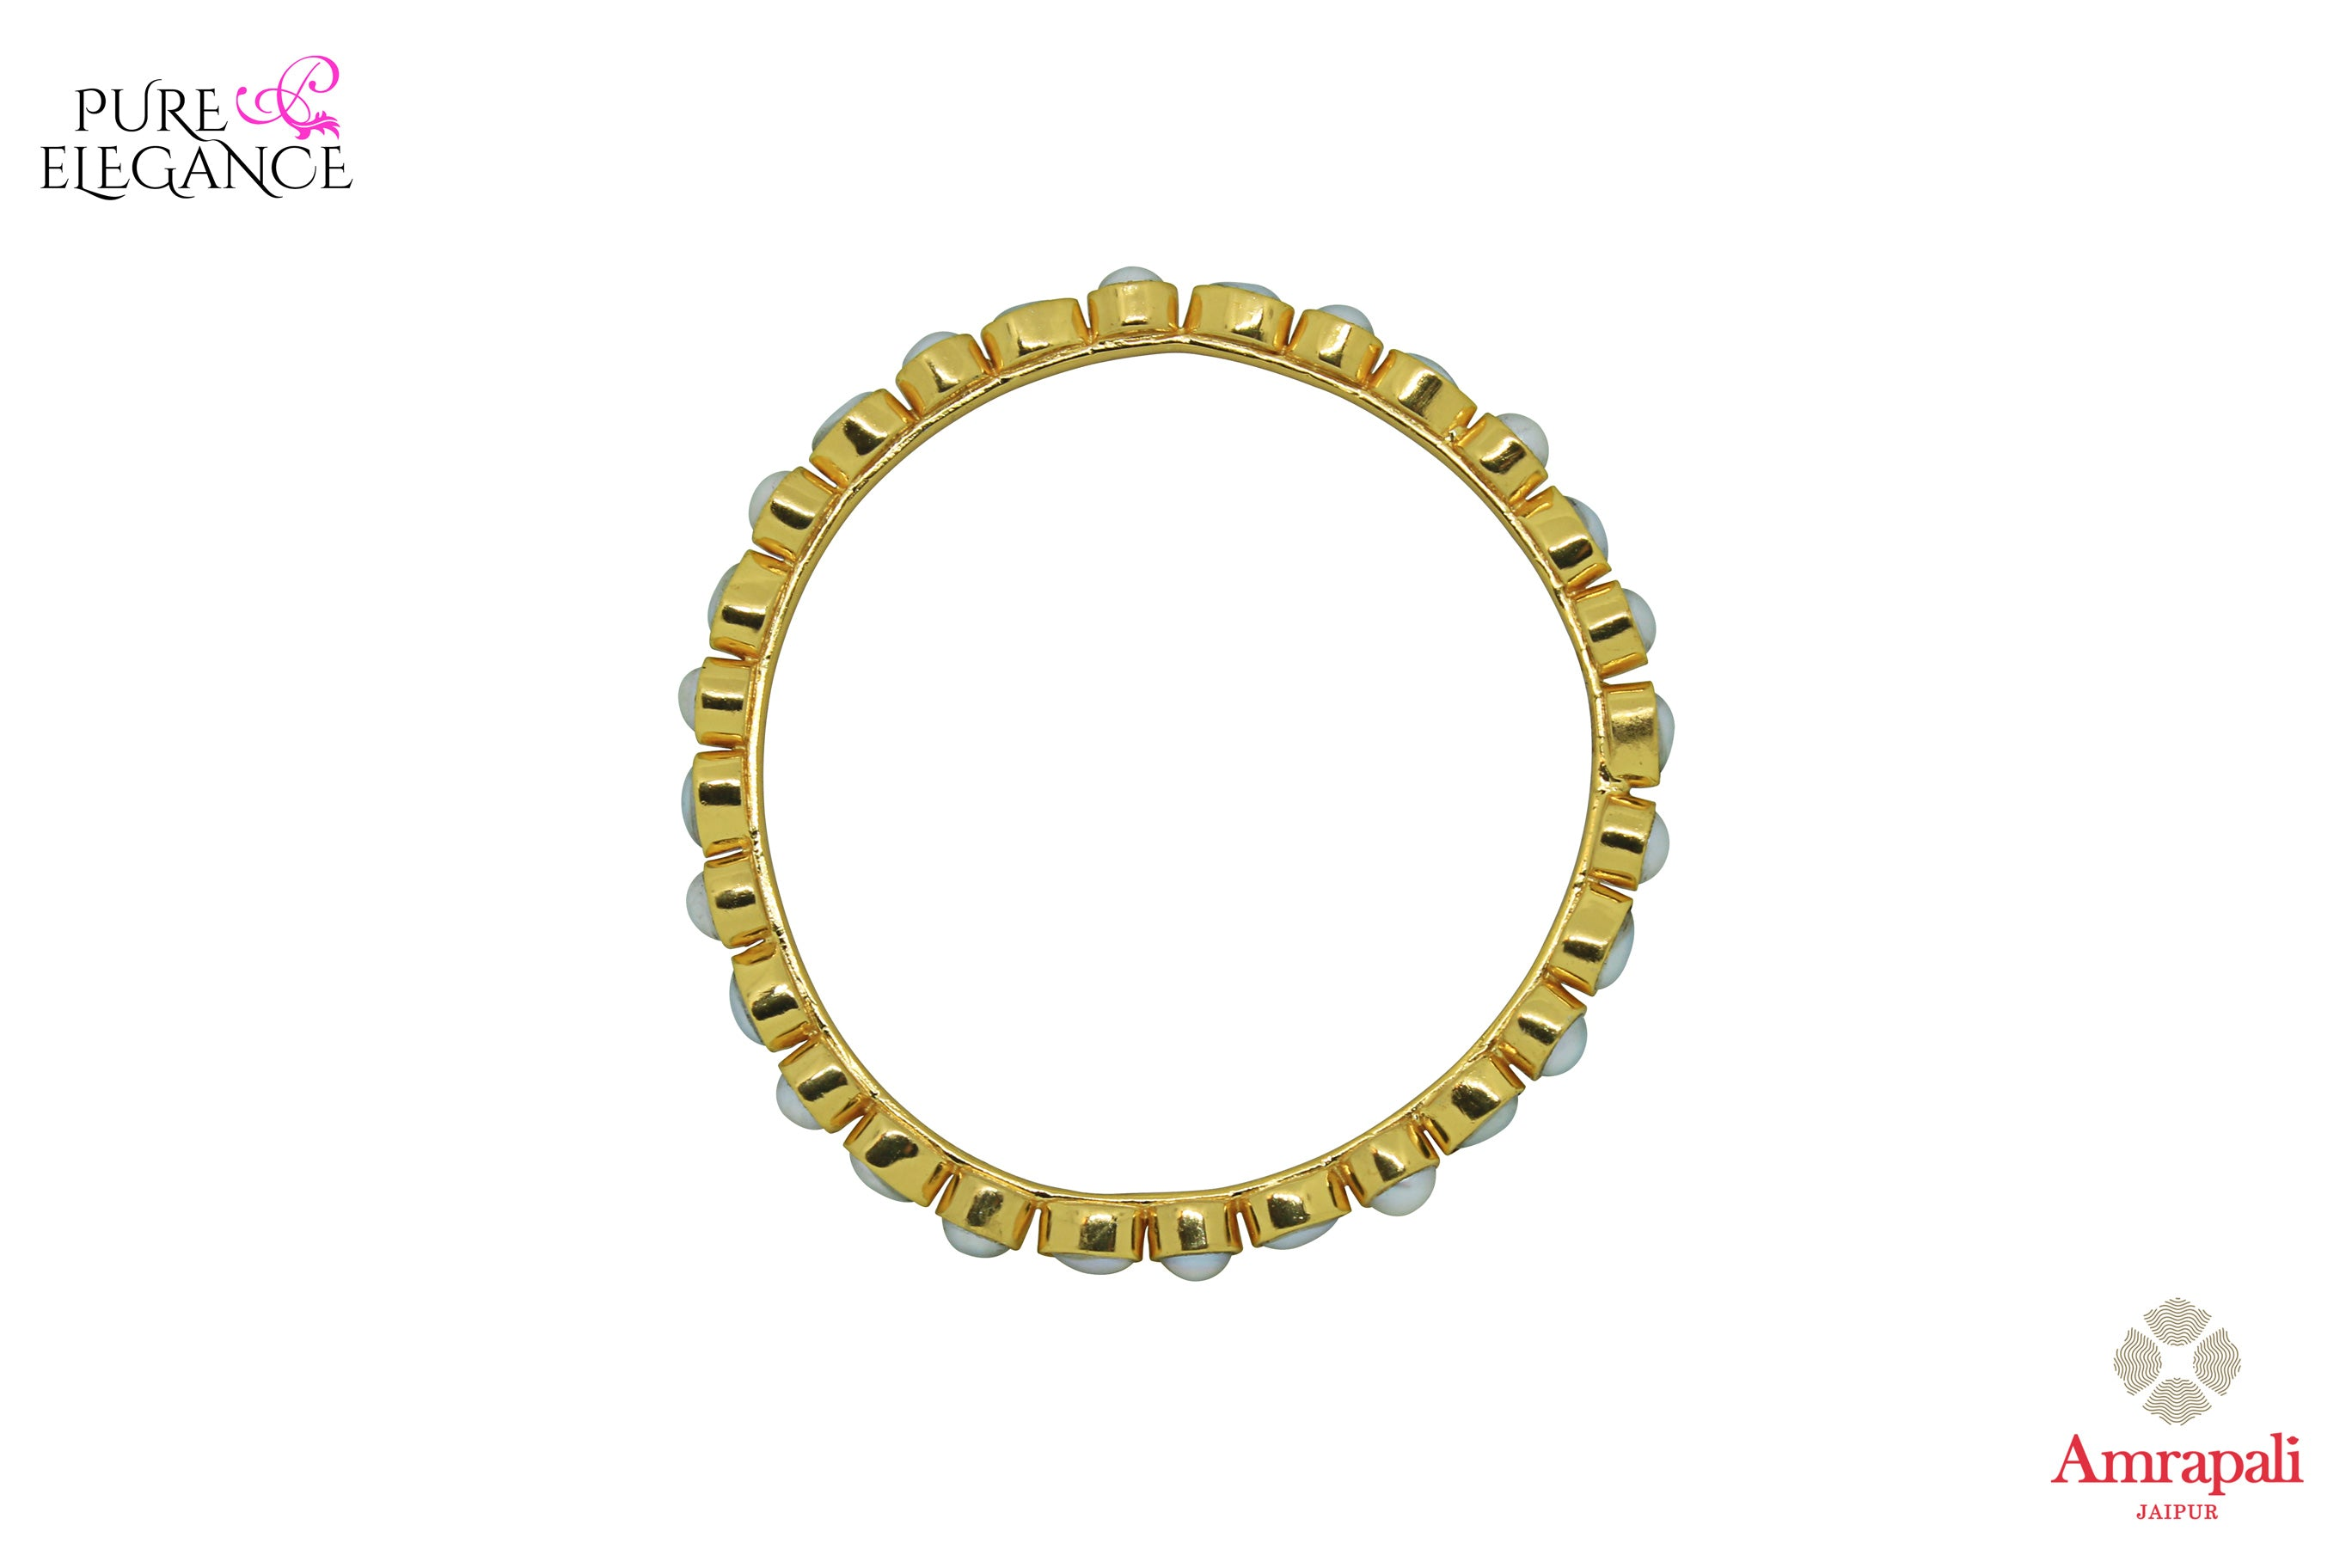 Shop Amrapali silver gold plated pearl bangle with online in USA. Find an exquisite collection of handcrafted silver gold plated jewelry in USA at Pure Elegance Indian fashion store. Complete your festive look with traditional Indian jewelry, silver gold plated earrings, silver jewellery from our online store.-top